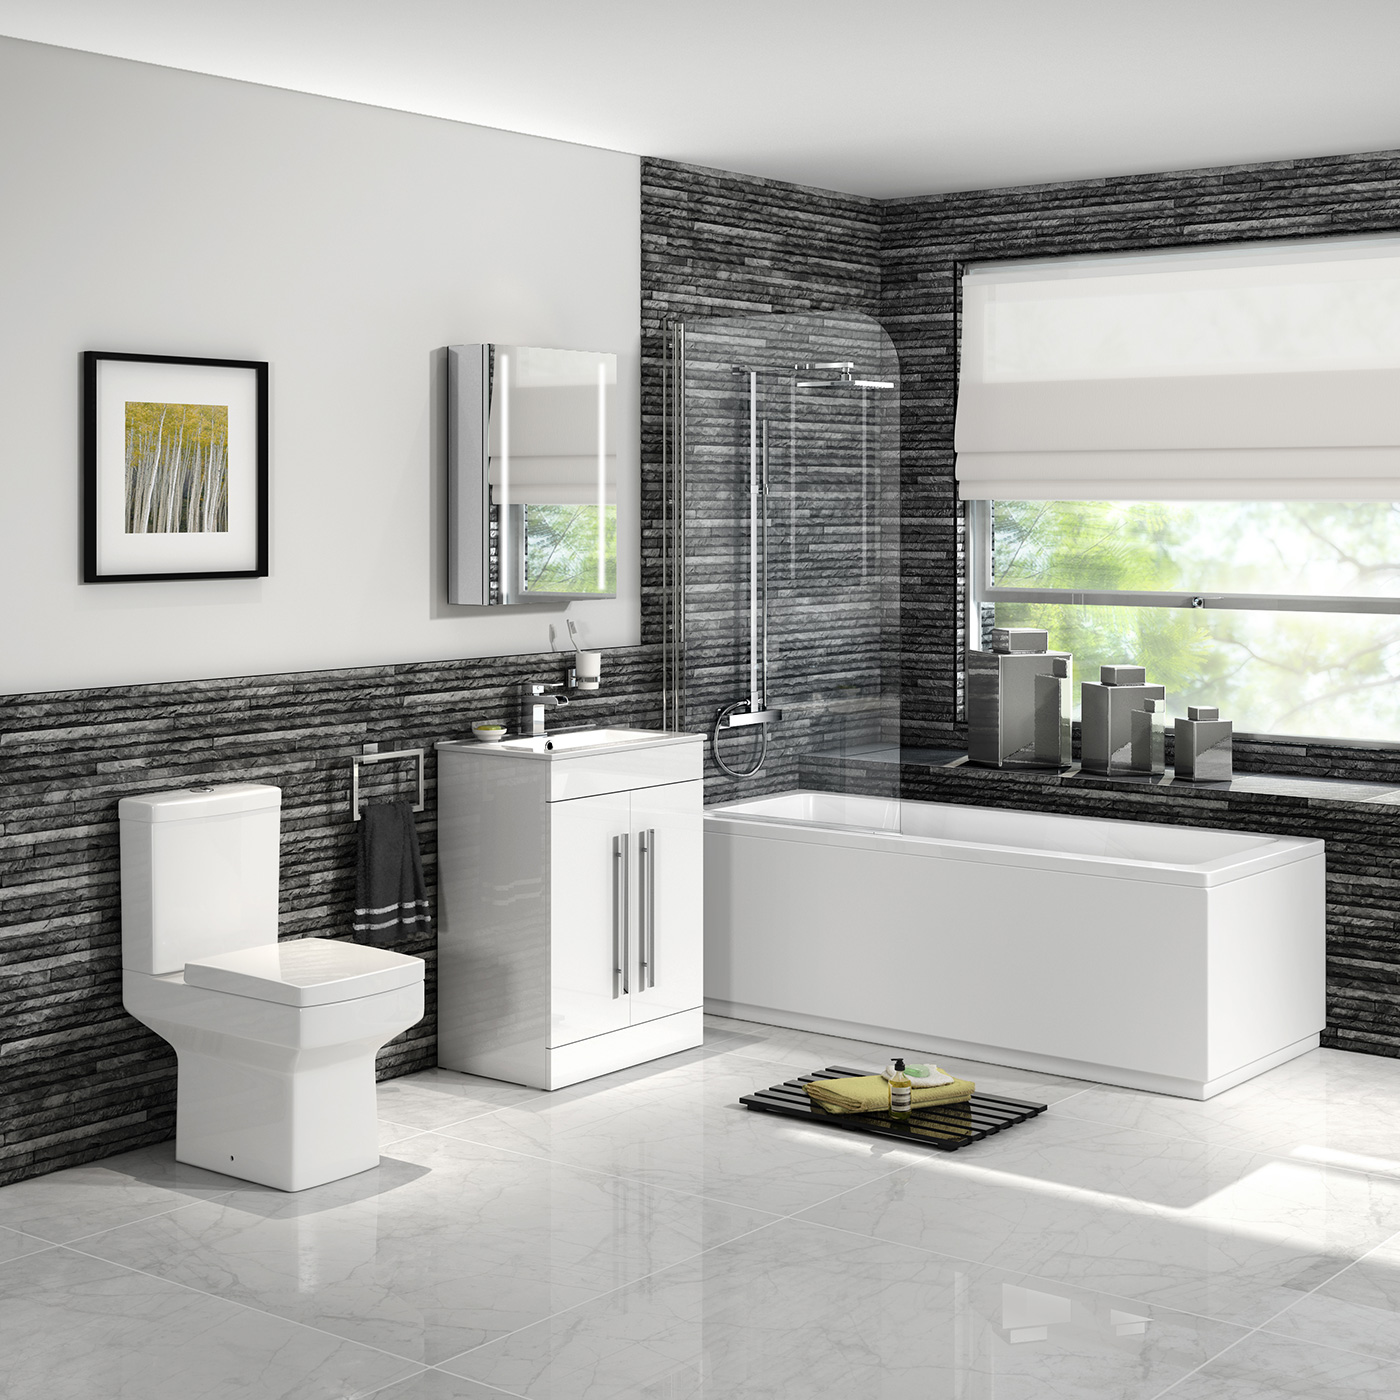 Bathroom Suites Bathroom Suites And Accessories Woodhouse And Sturnham Ltd